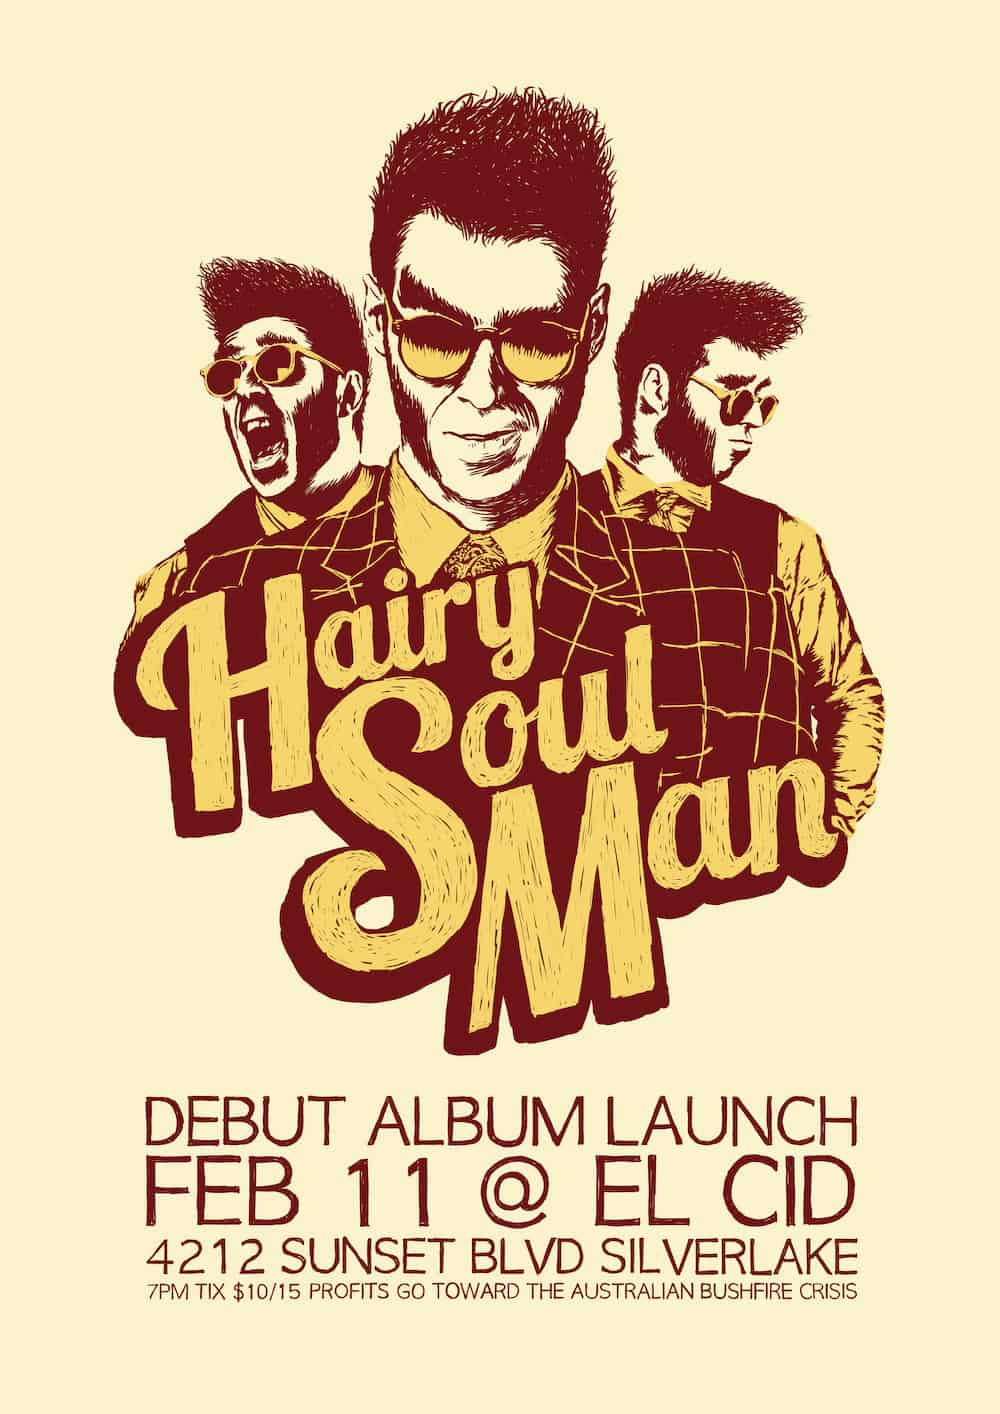 HSM album Launch Poster small 1 - CHRONIC HORROR Guest Hairy Soul Man is So Sexy It's Scary